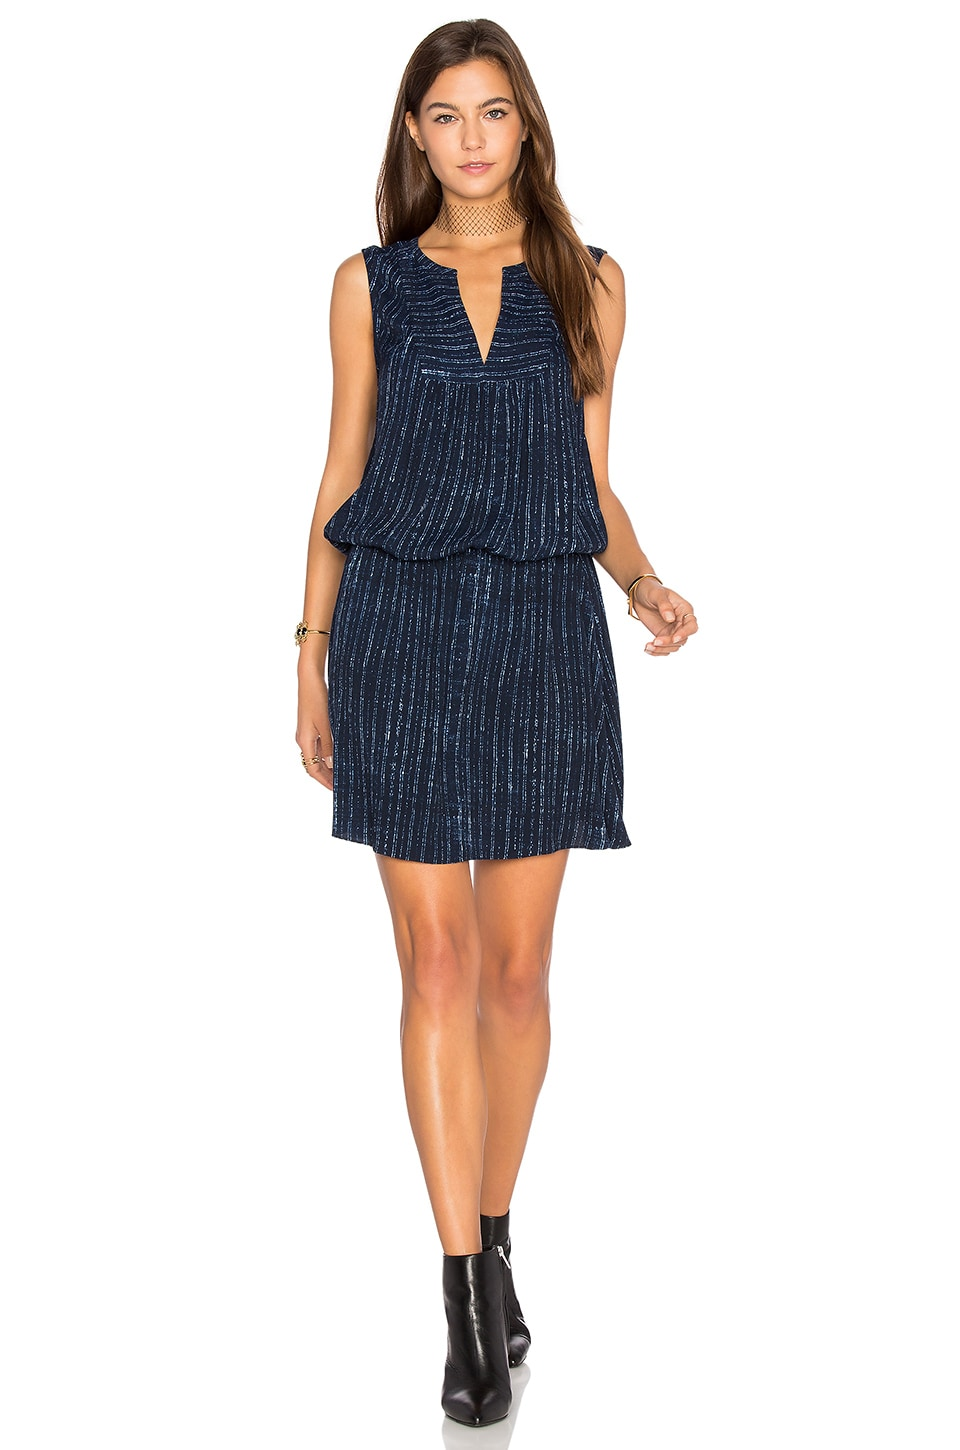 Tish Dress by Soft Joie